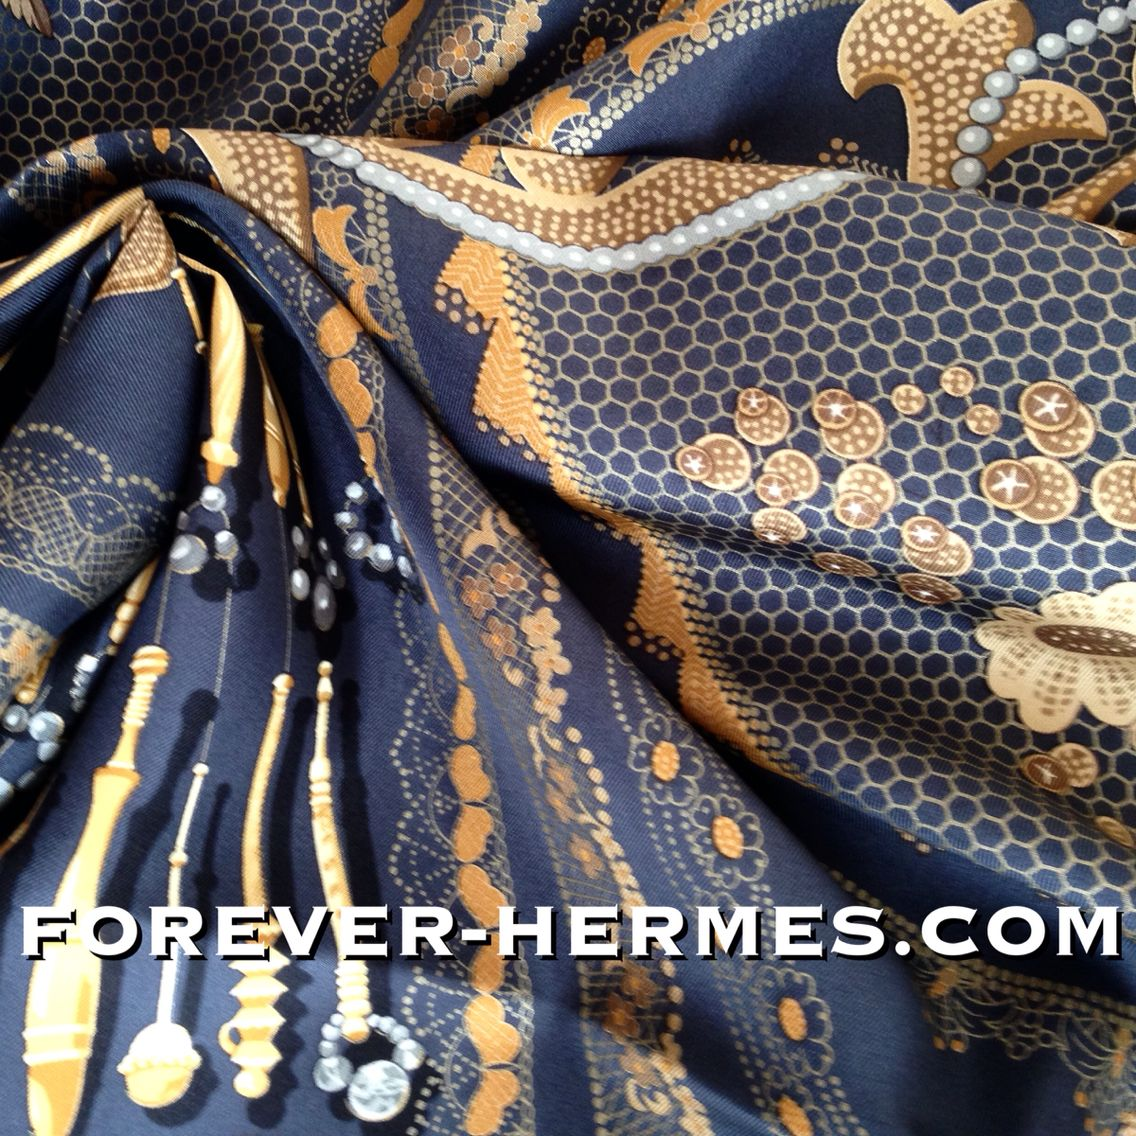 Doigts De Fee is the title of this stunning #Hermes #scarf designed by Cathy Latham that features #lace & #embroidery in an open web like pattern Needle Lace #Cutwork Bobbin lace, #Chantilly lace, #Macrame #tatting #crochet on an elegant greyish-navy base with gold threads. In our store now http://forever-hermes.com #foreverhermes this #HermesCarre would look amazing even on a stylish #dapper  #gentleman #MensSuit #mensfashion #mensnecktie #womensfashion #Hermes #silk #scarf